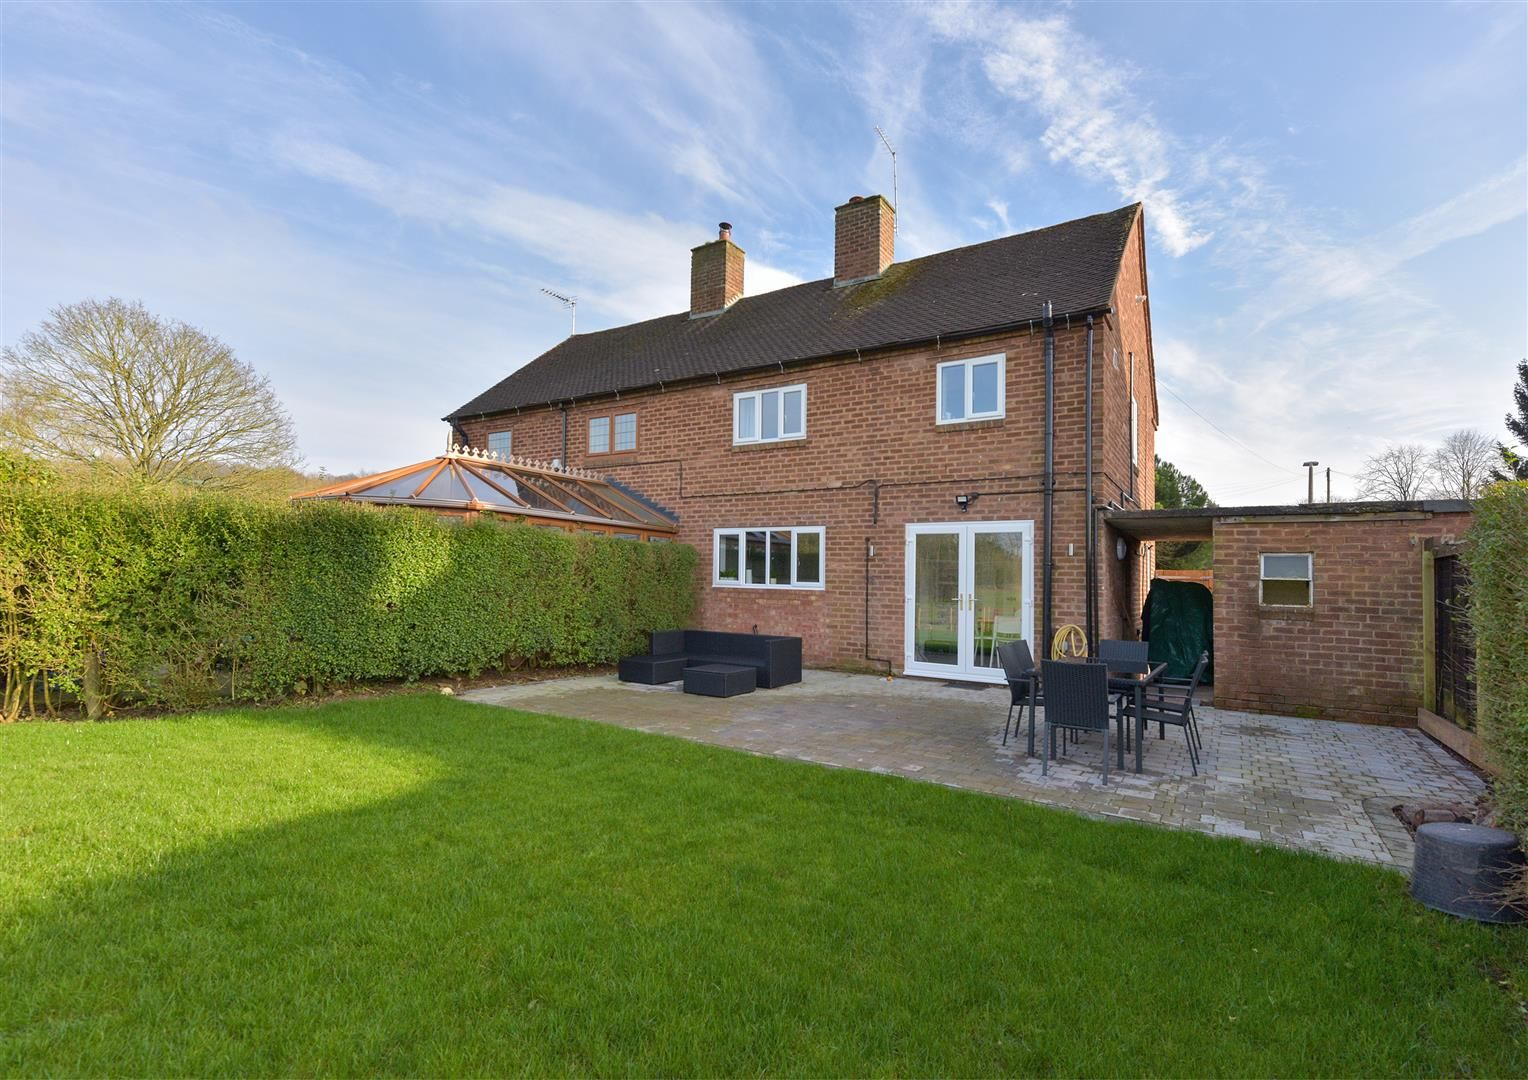 3 bed house for sale in Clent  - Property Image 28